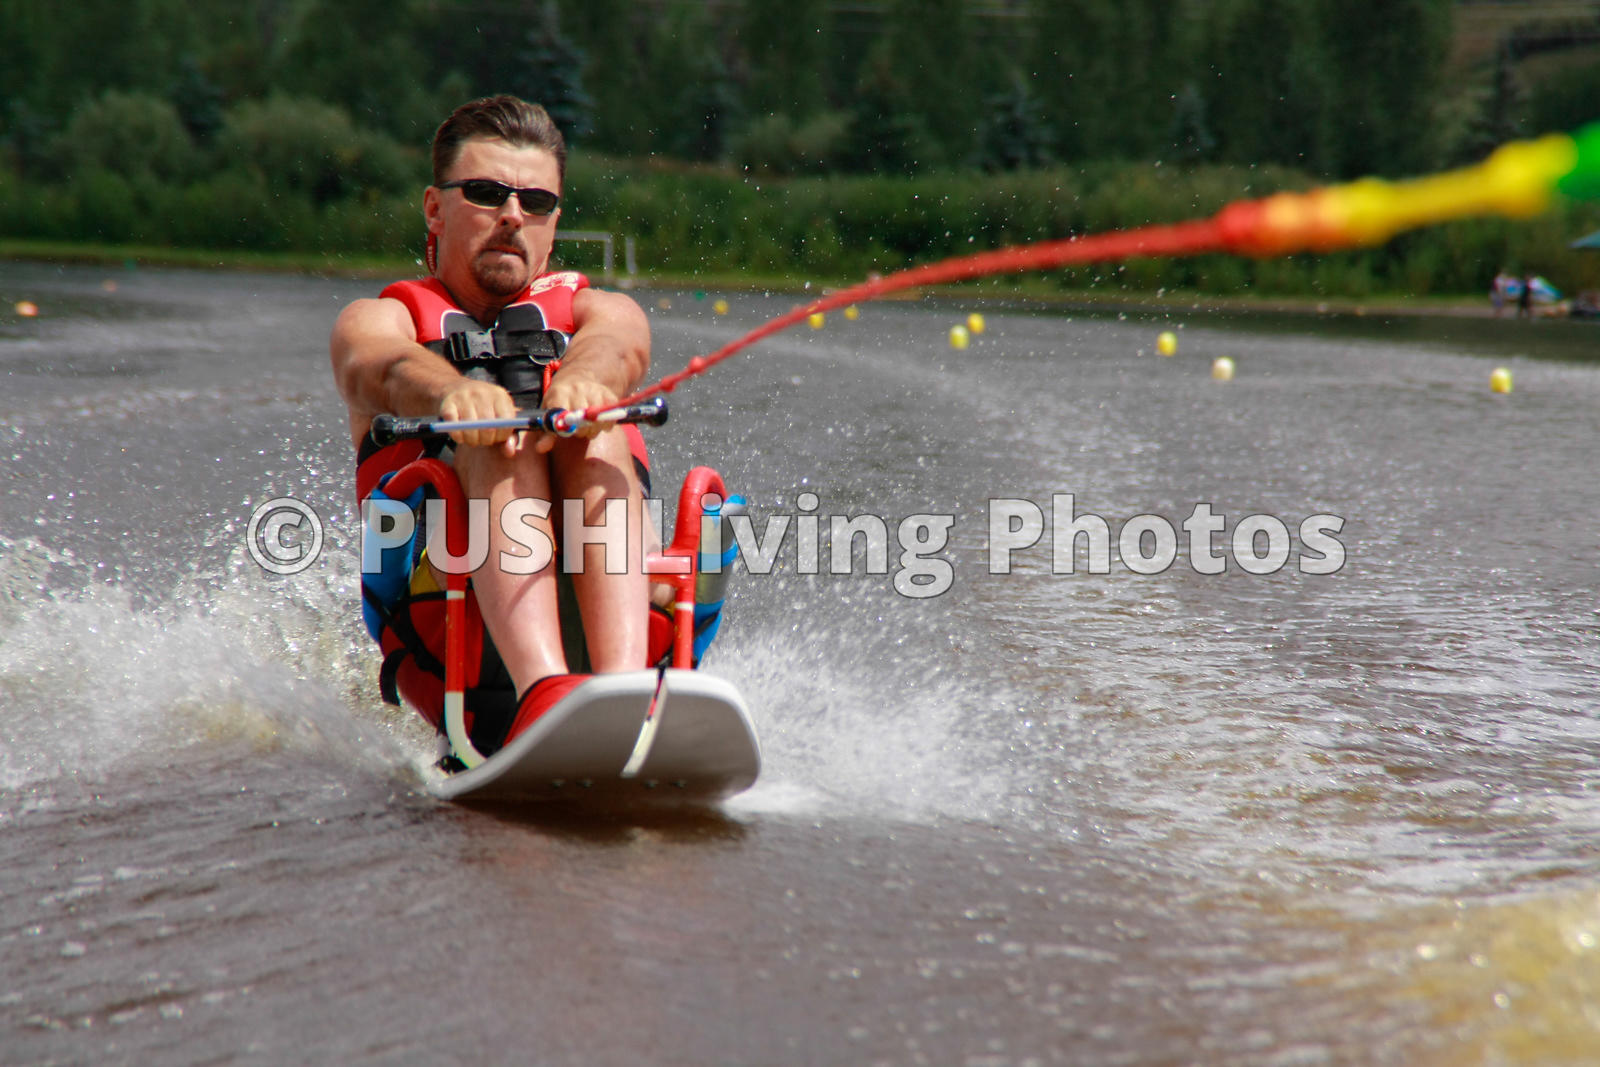 Man on a water sit ski in competition